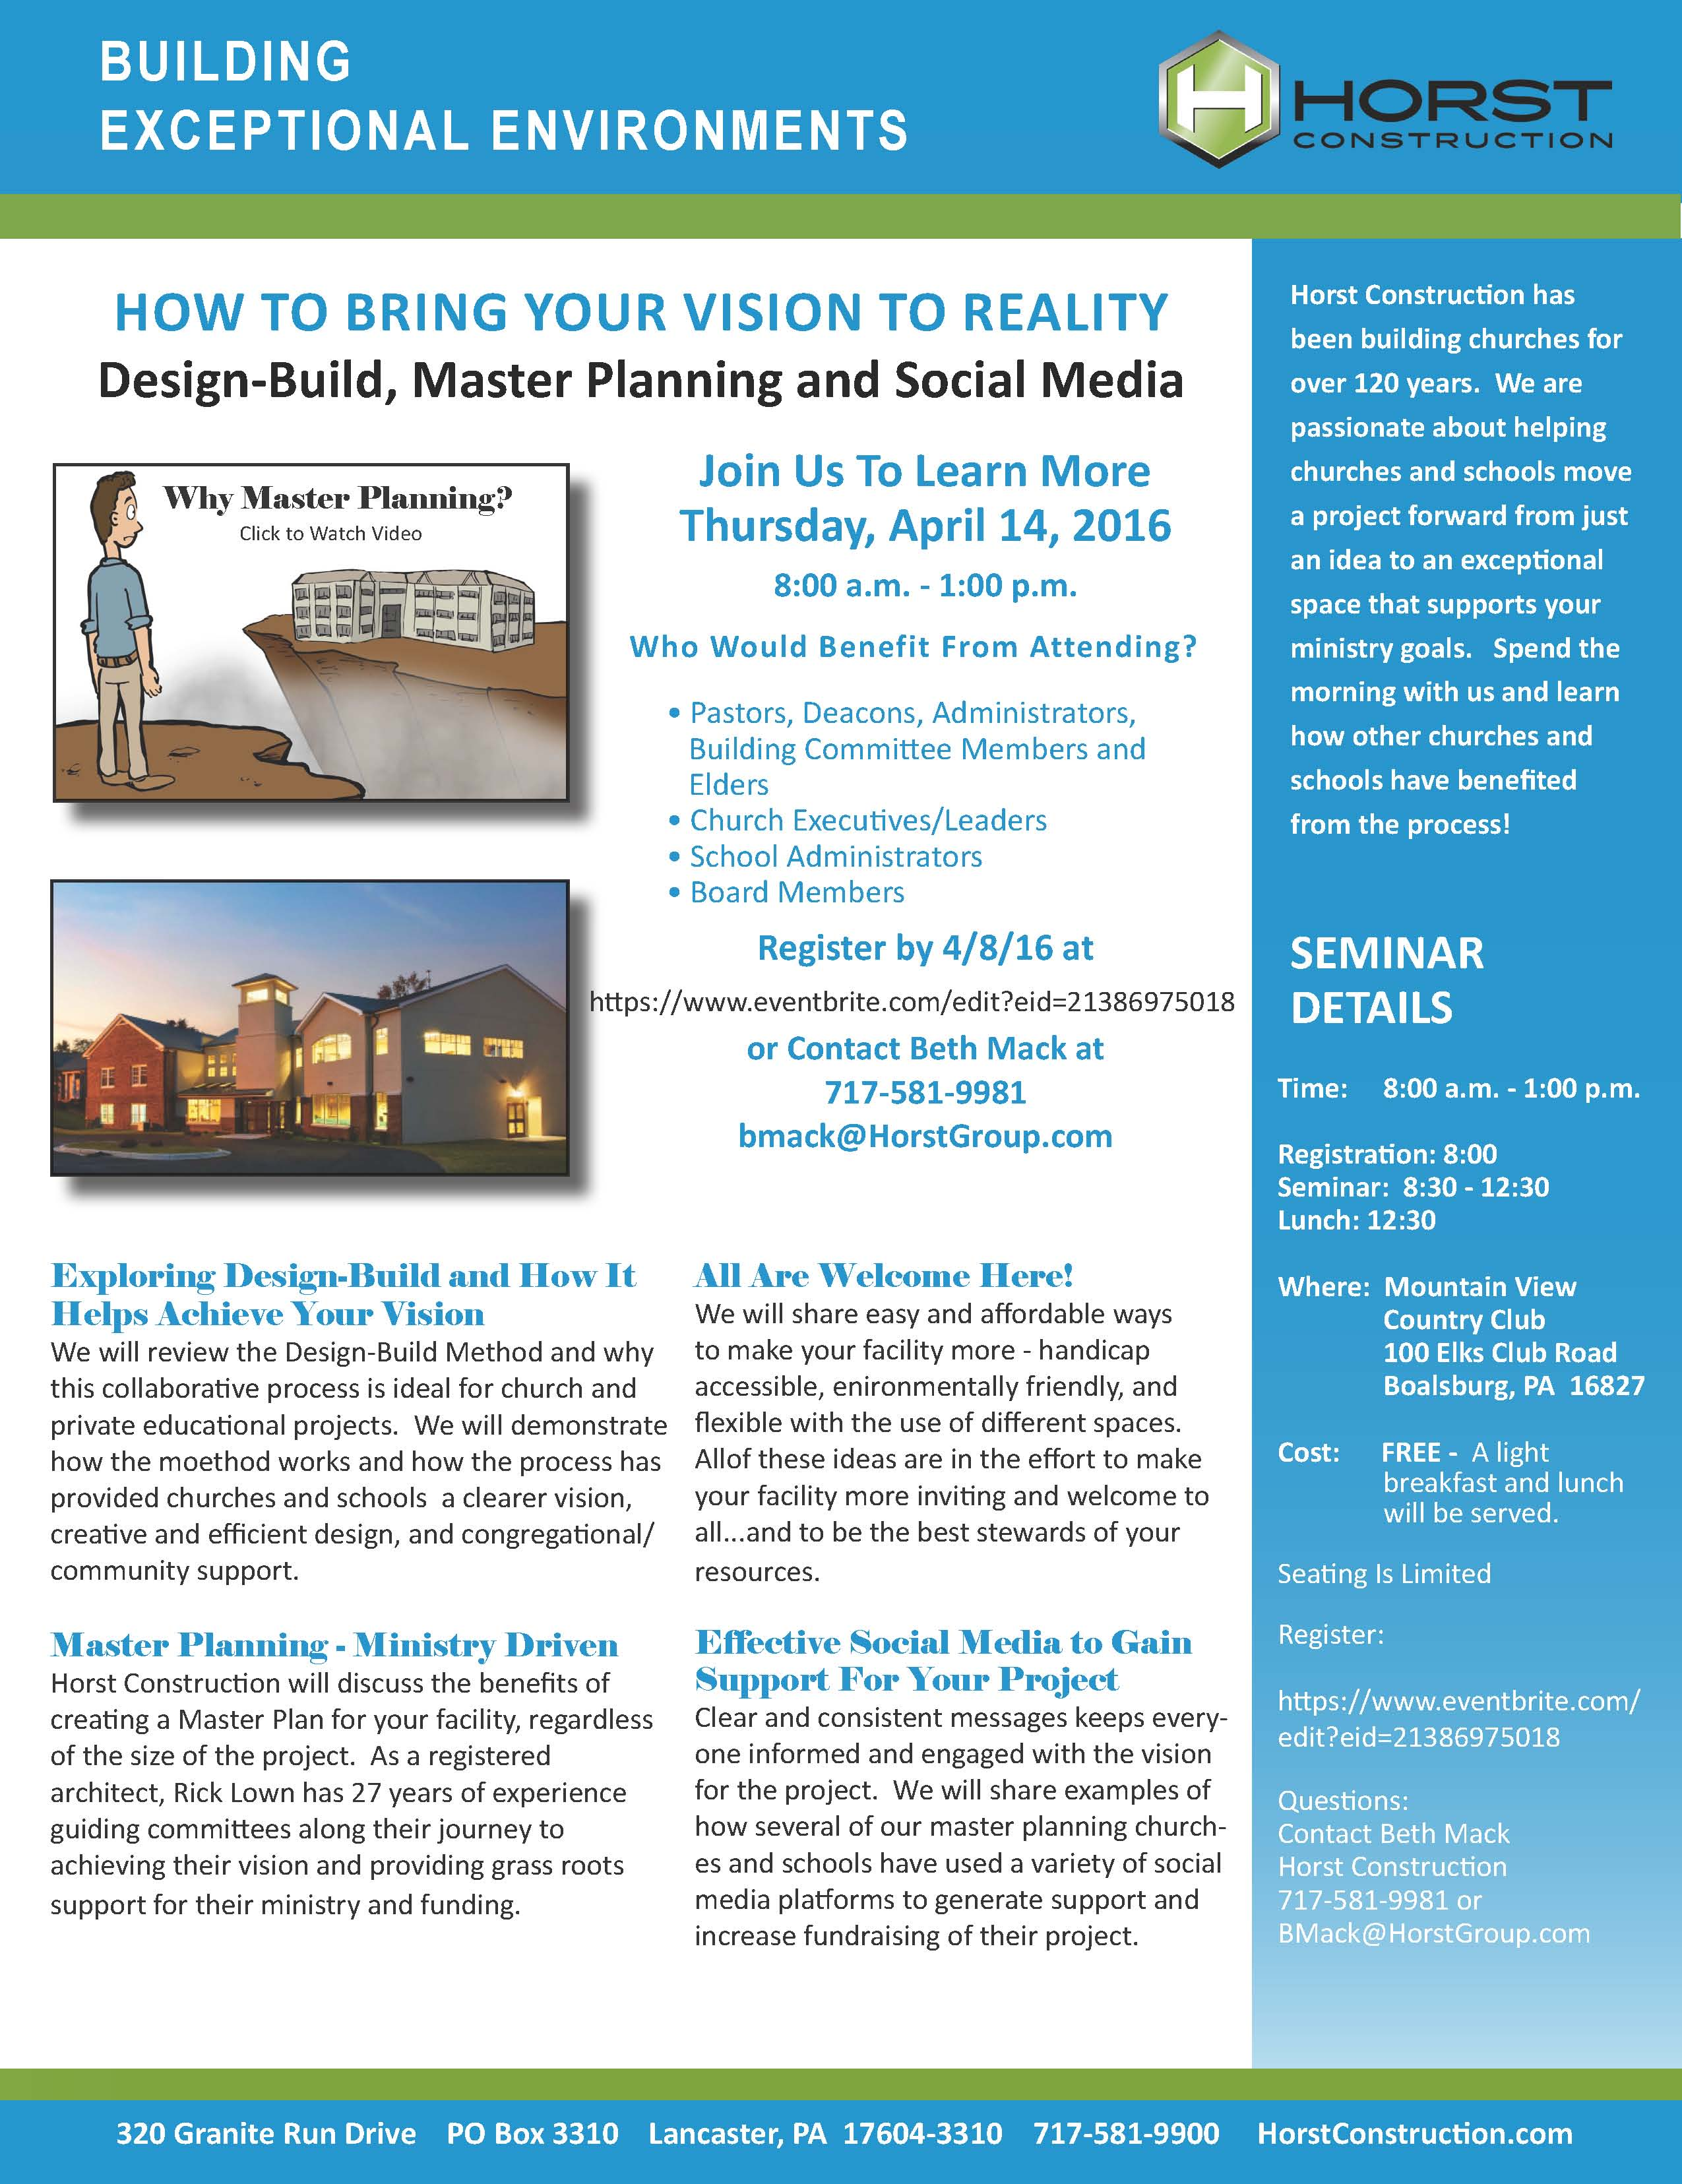 Horst Construction_How To Bring Your Vision to Reality Seminar Flyer